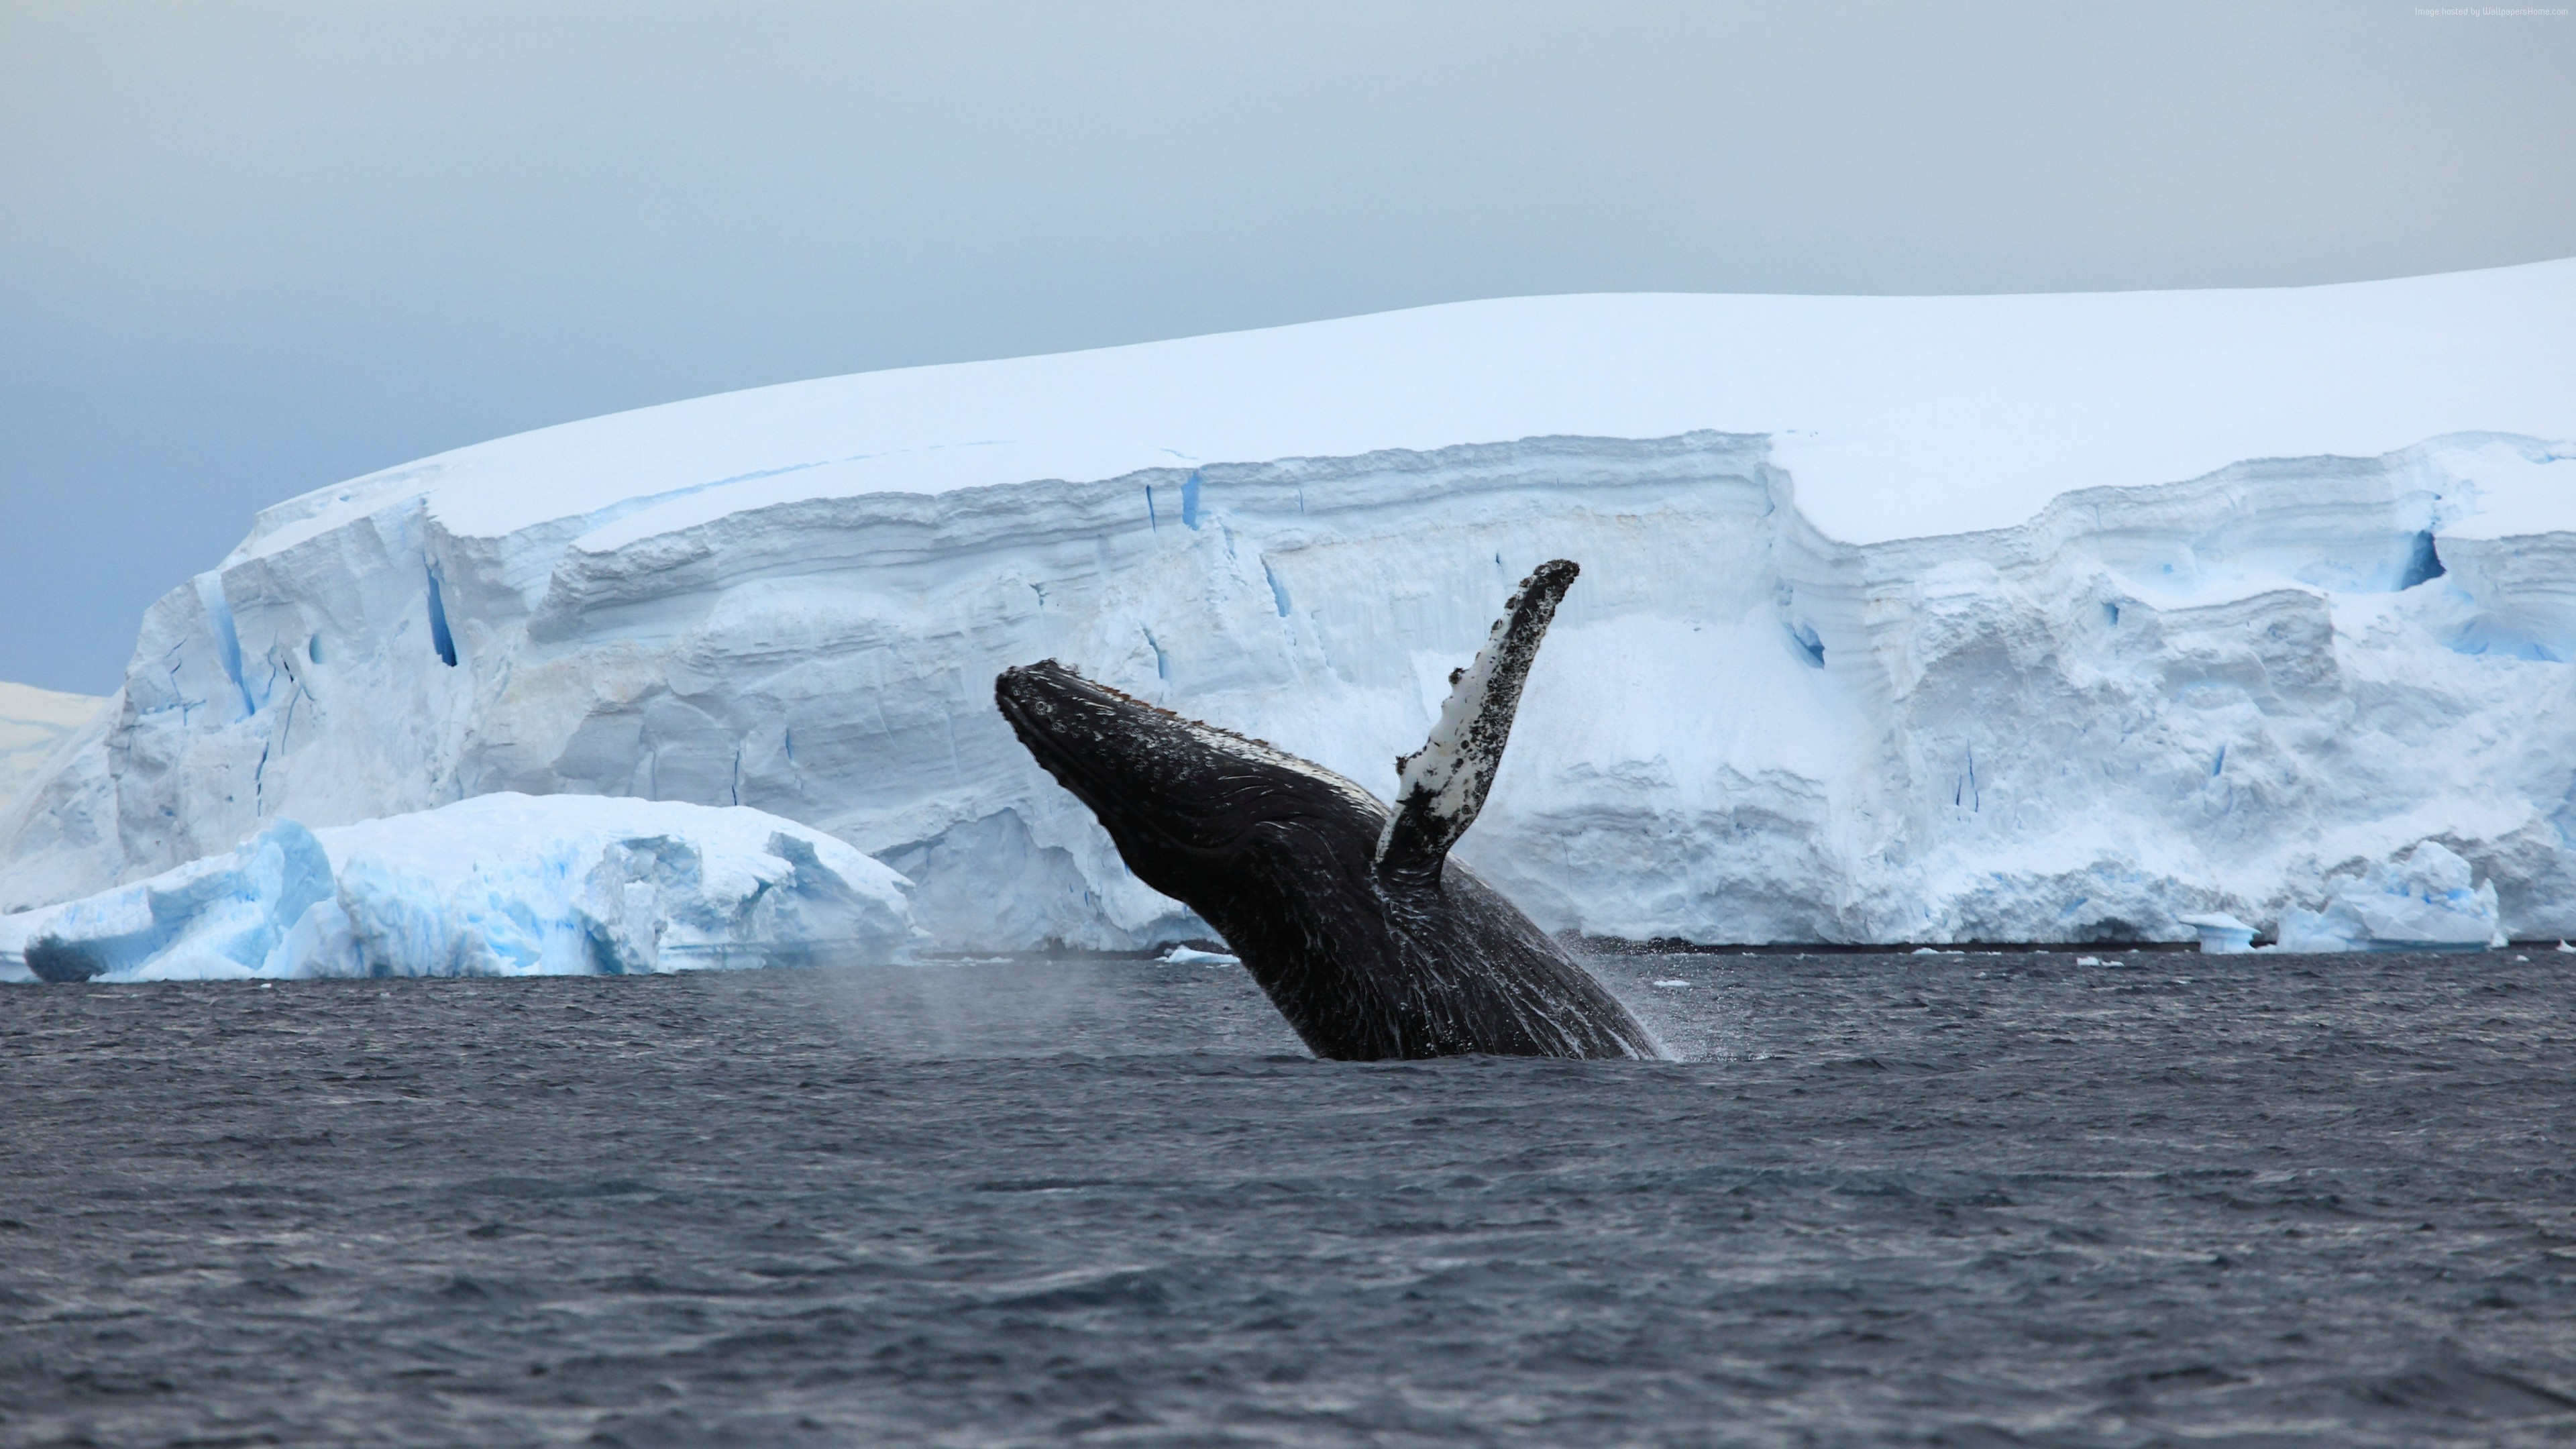 Wallpaper Antarctica, ocean, ice, whale, 4k, Travel